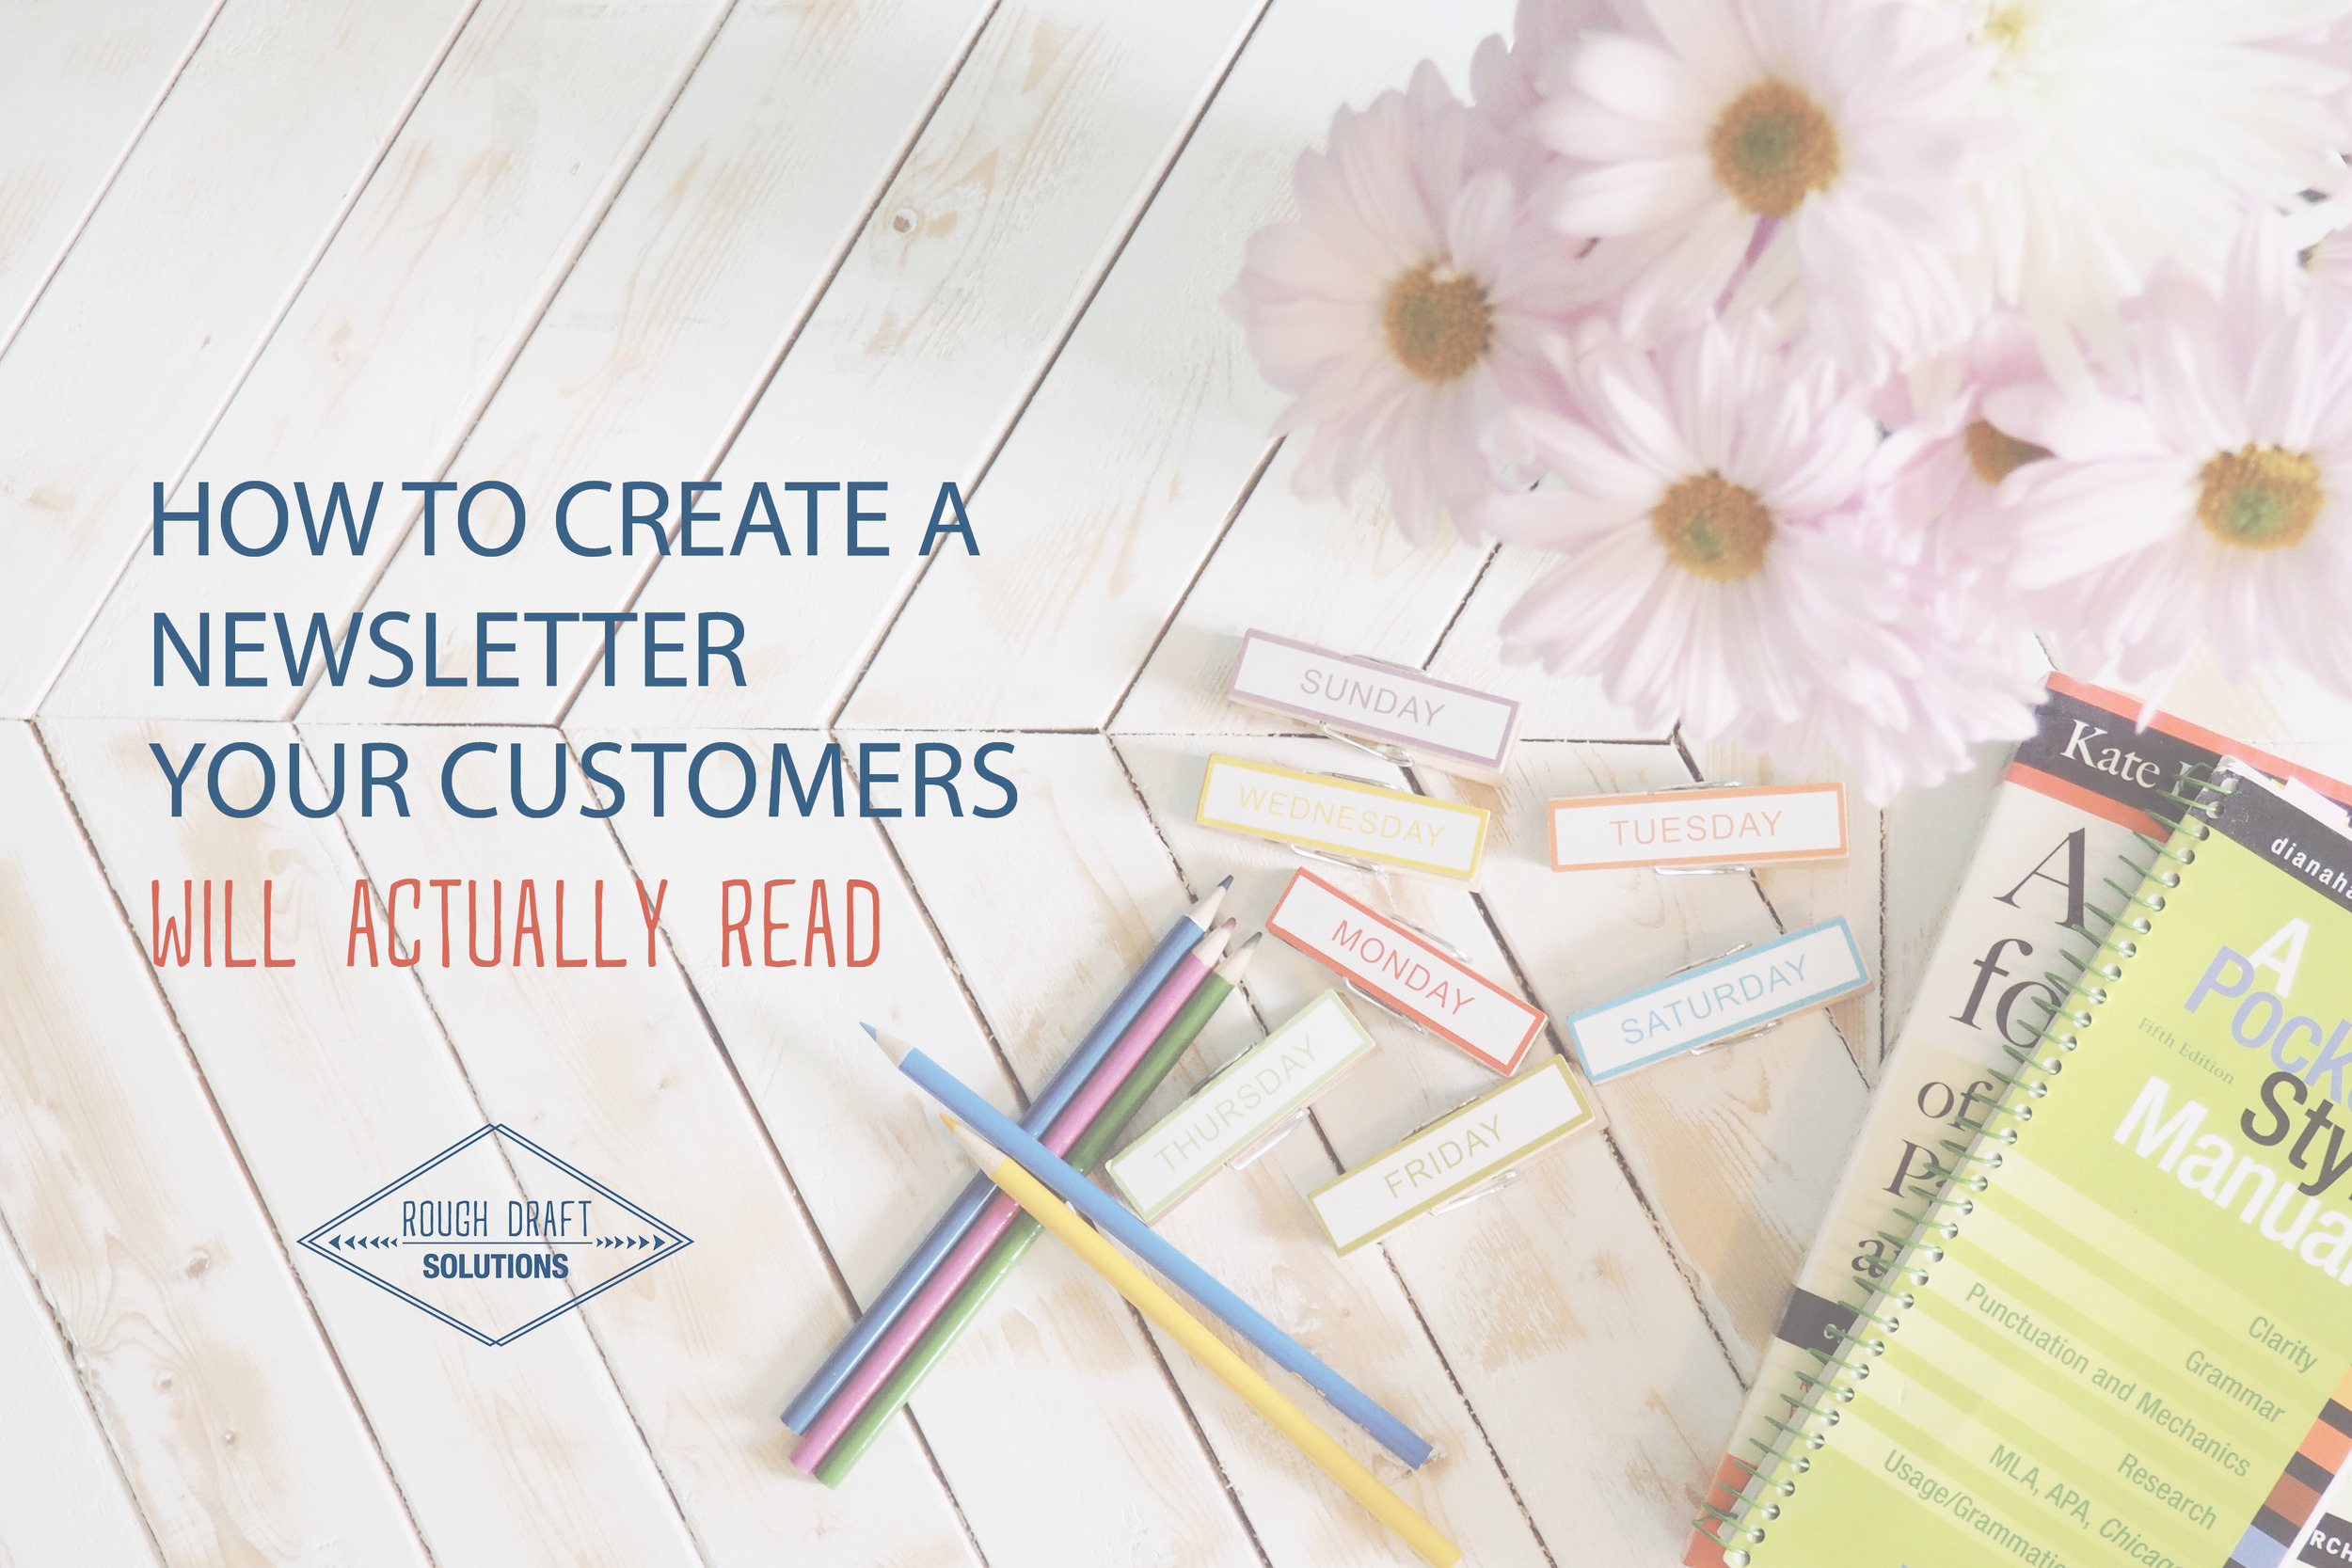 How to Create a Newsletter Your Customers Will Actually Read